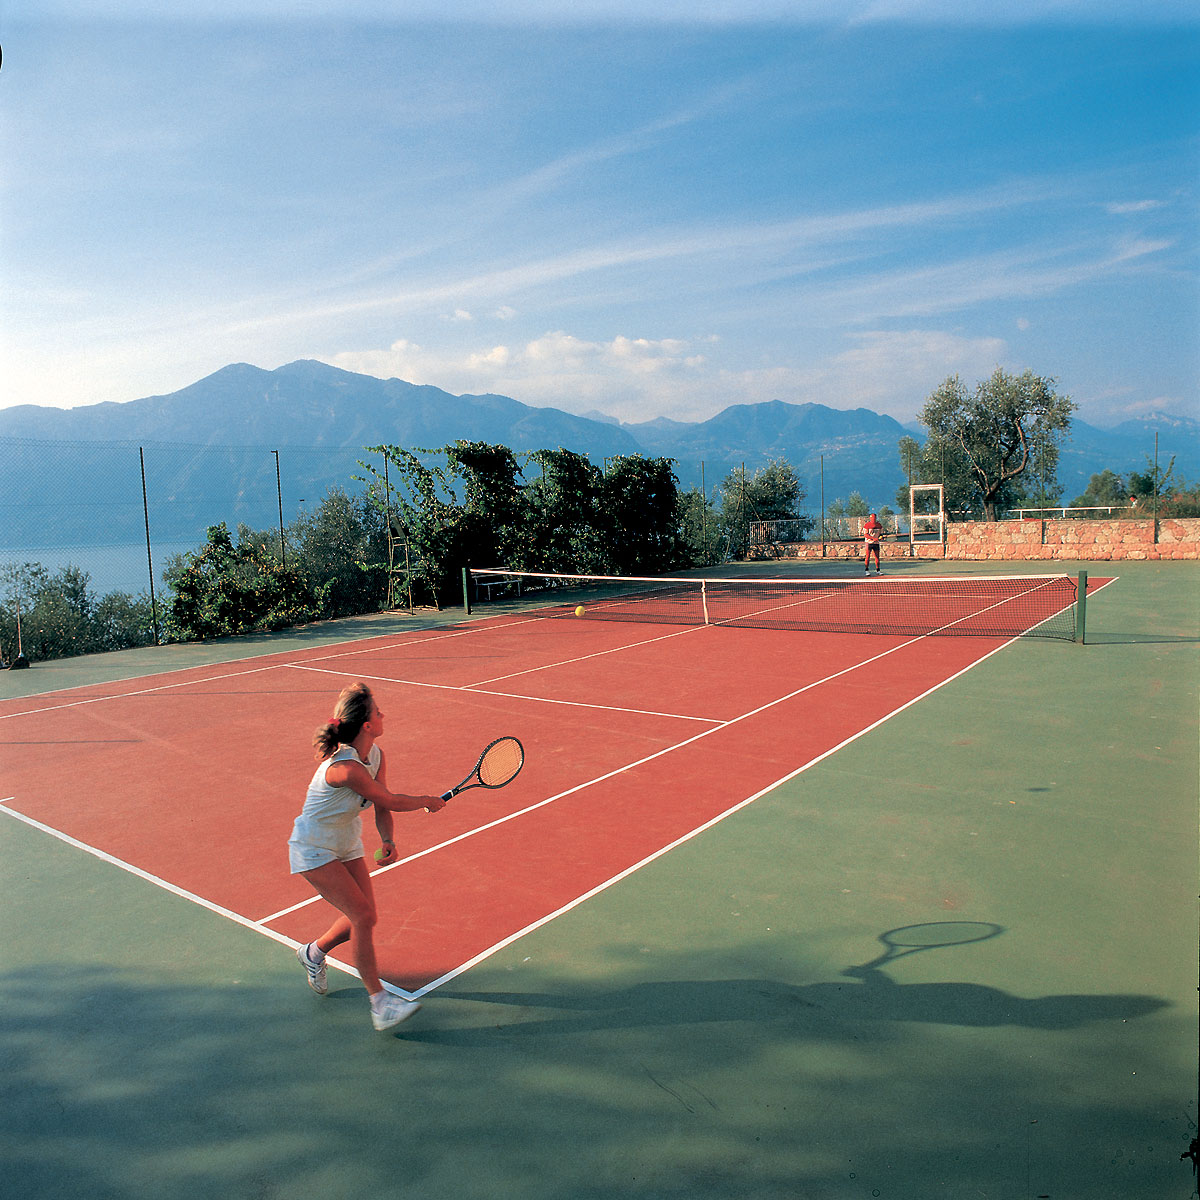 Panoramic tennis court